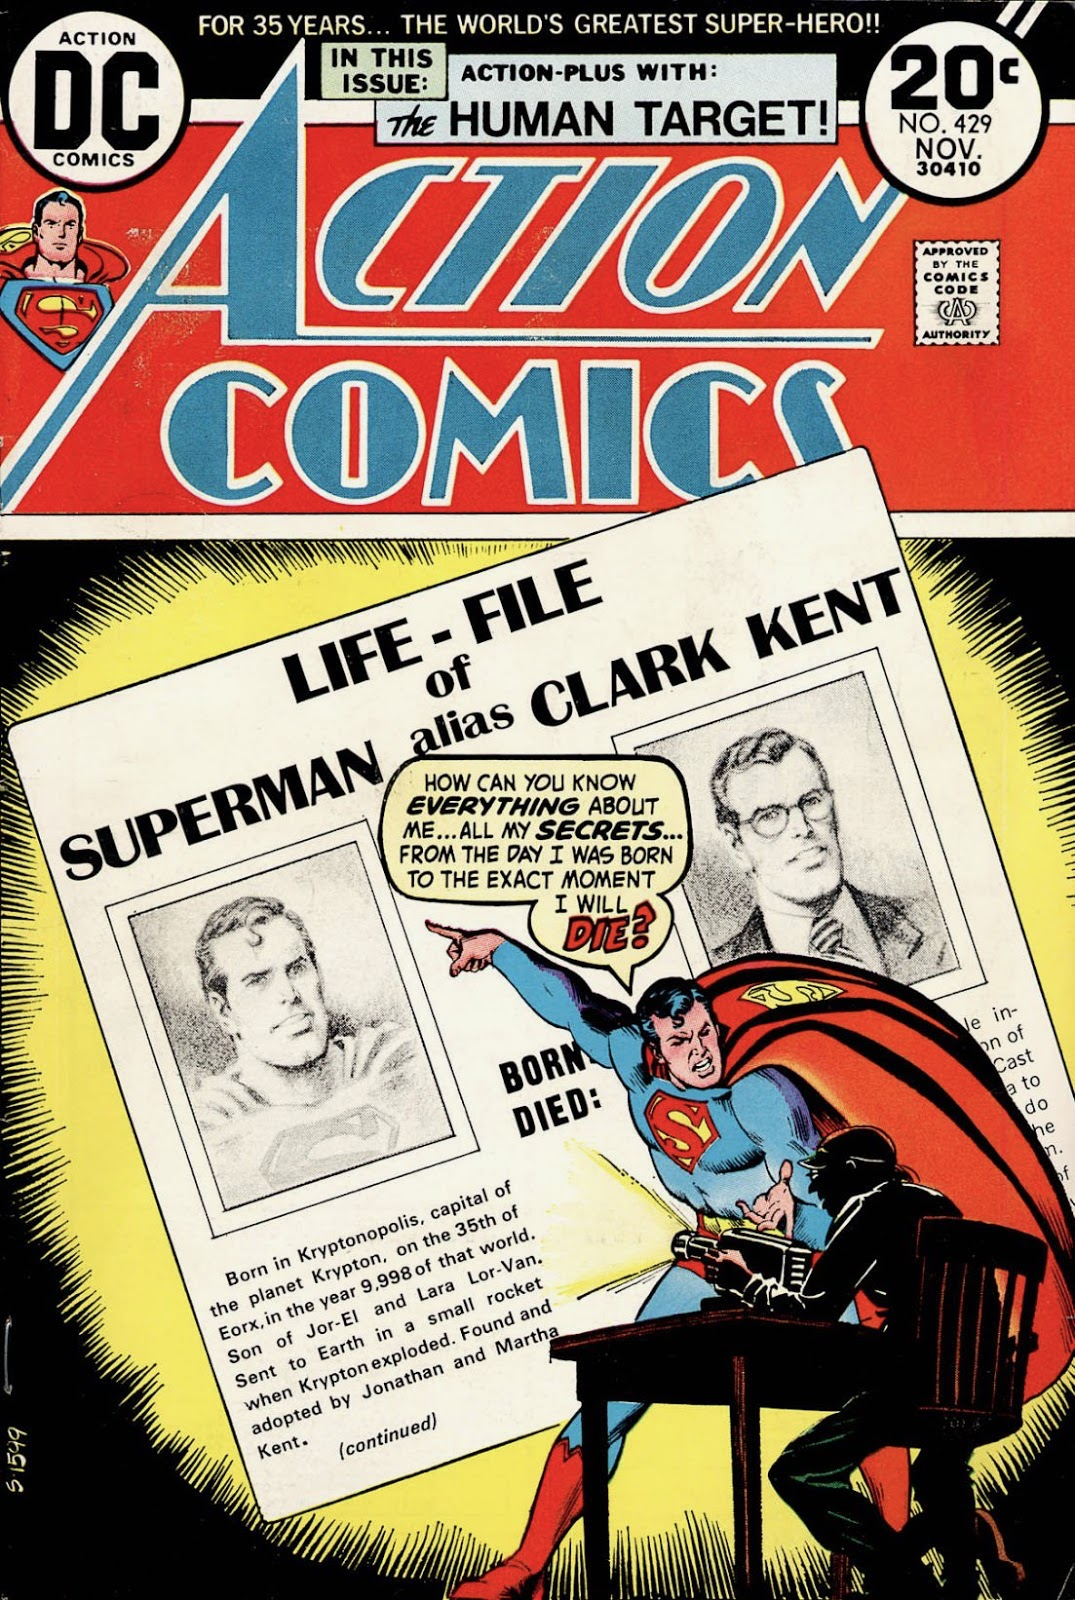 Superman confronting fellow in chair projecting 'Life-File of Superman alias Clark Kent' on wall, asking 'How can you know everything about me... all my secrets...?'